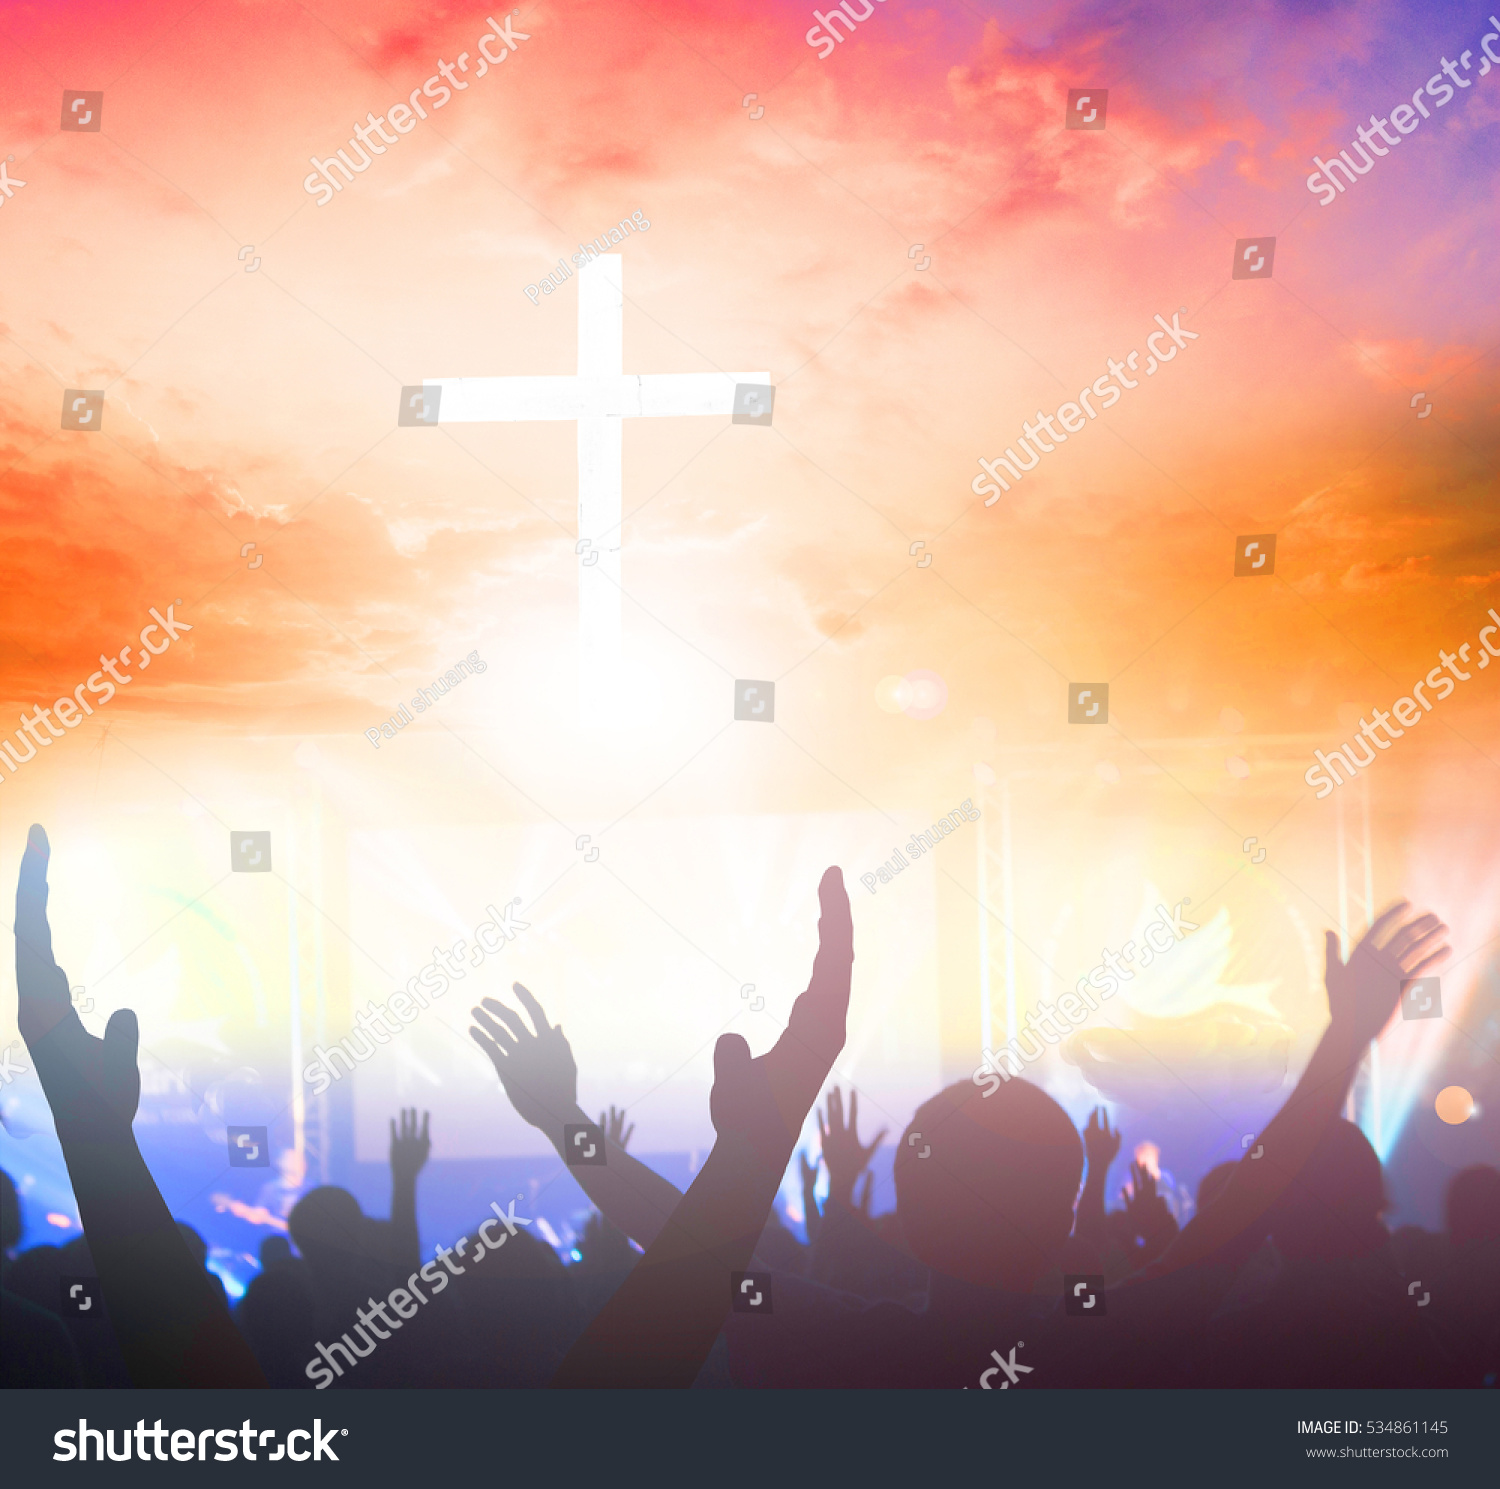 worship in christianity Numerous signs and symbols, many of them associated with worship, have developed over the two thousand years of christianity the most immediately recognizable.